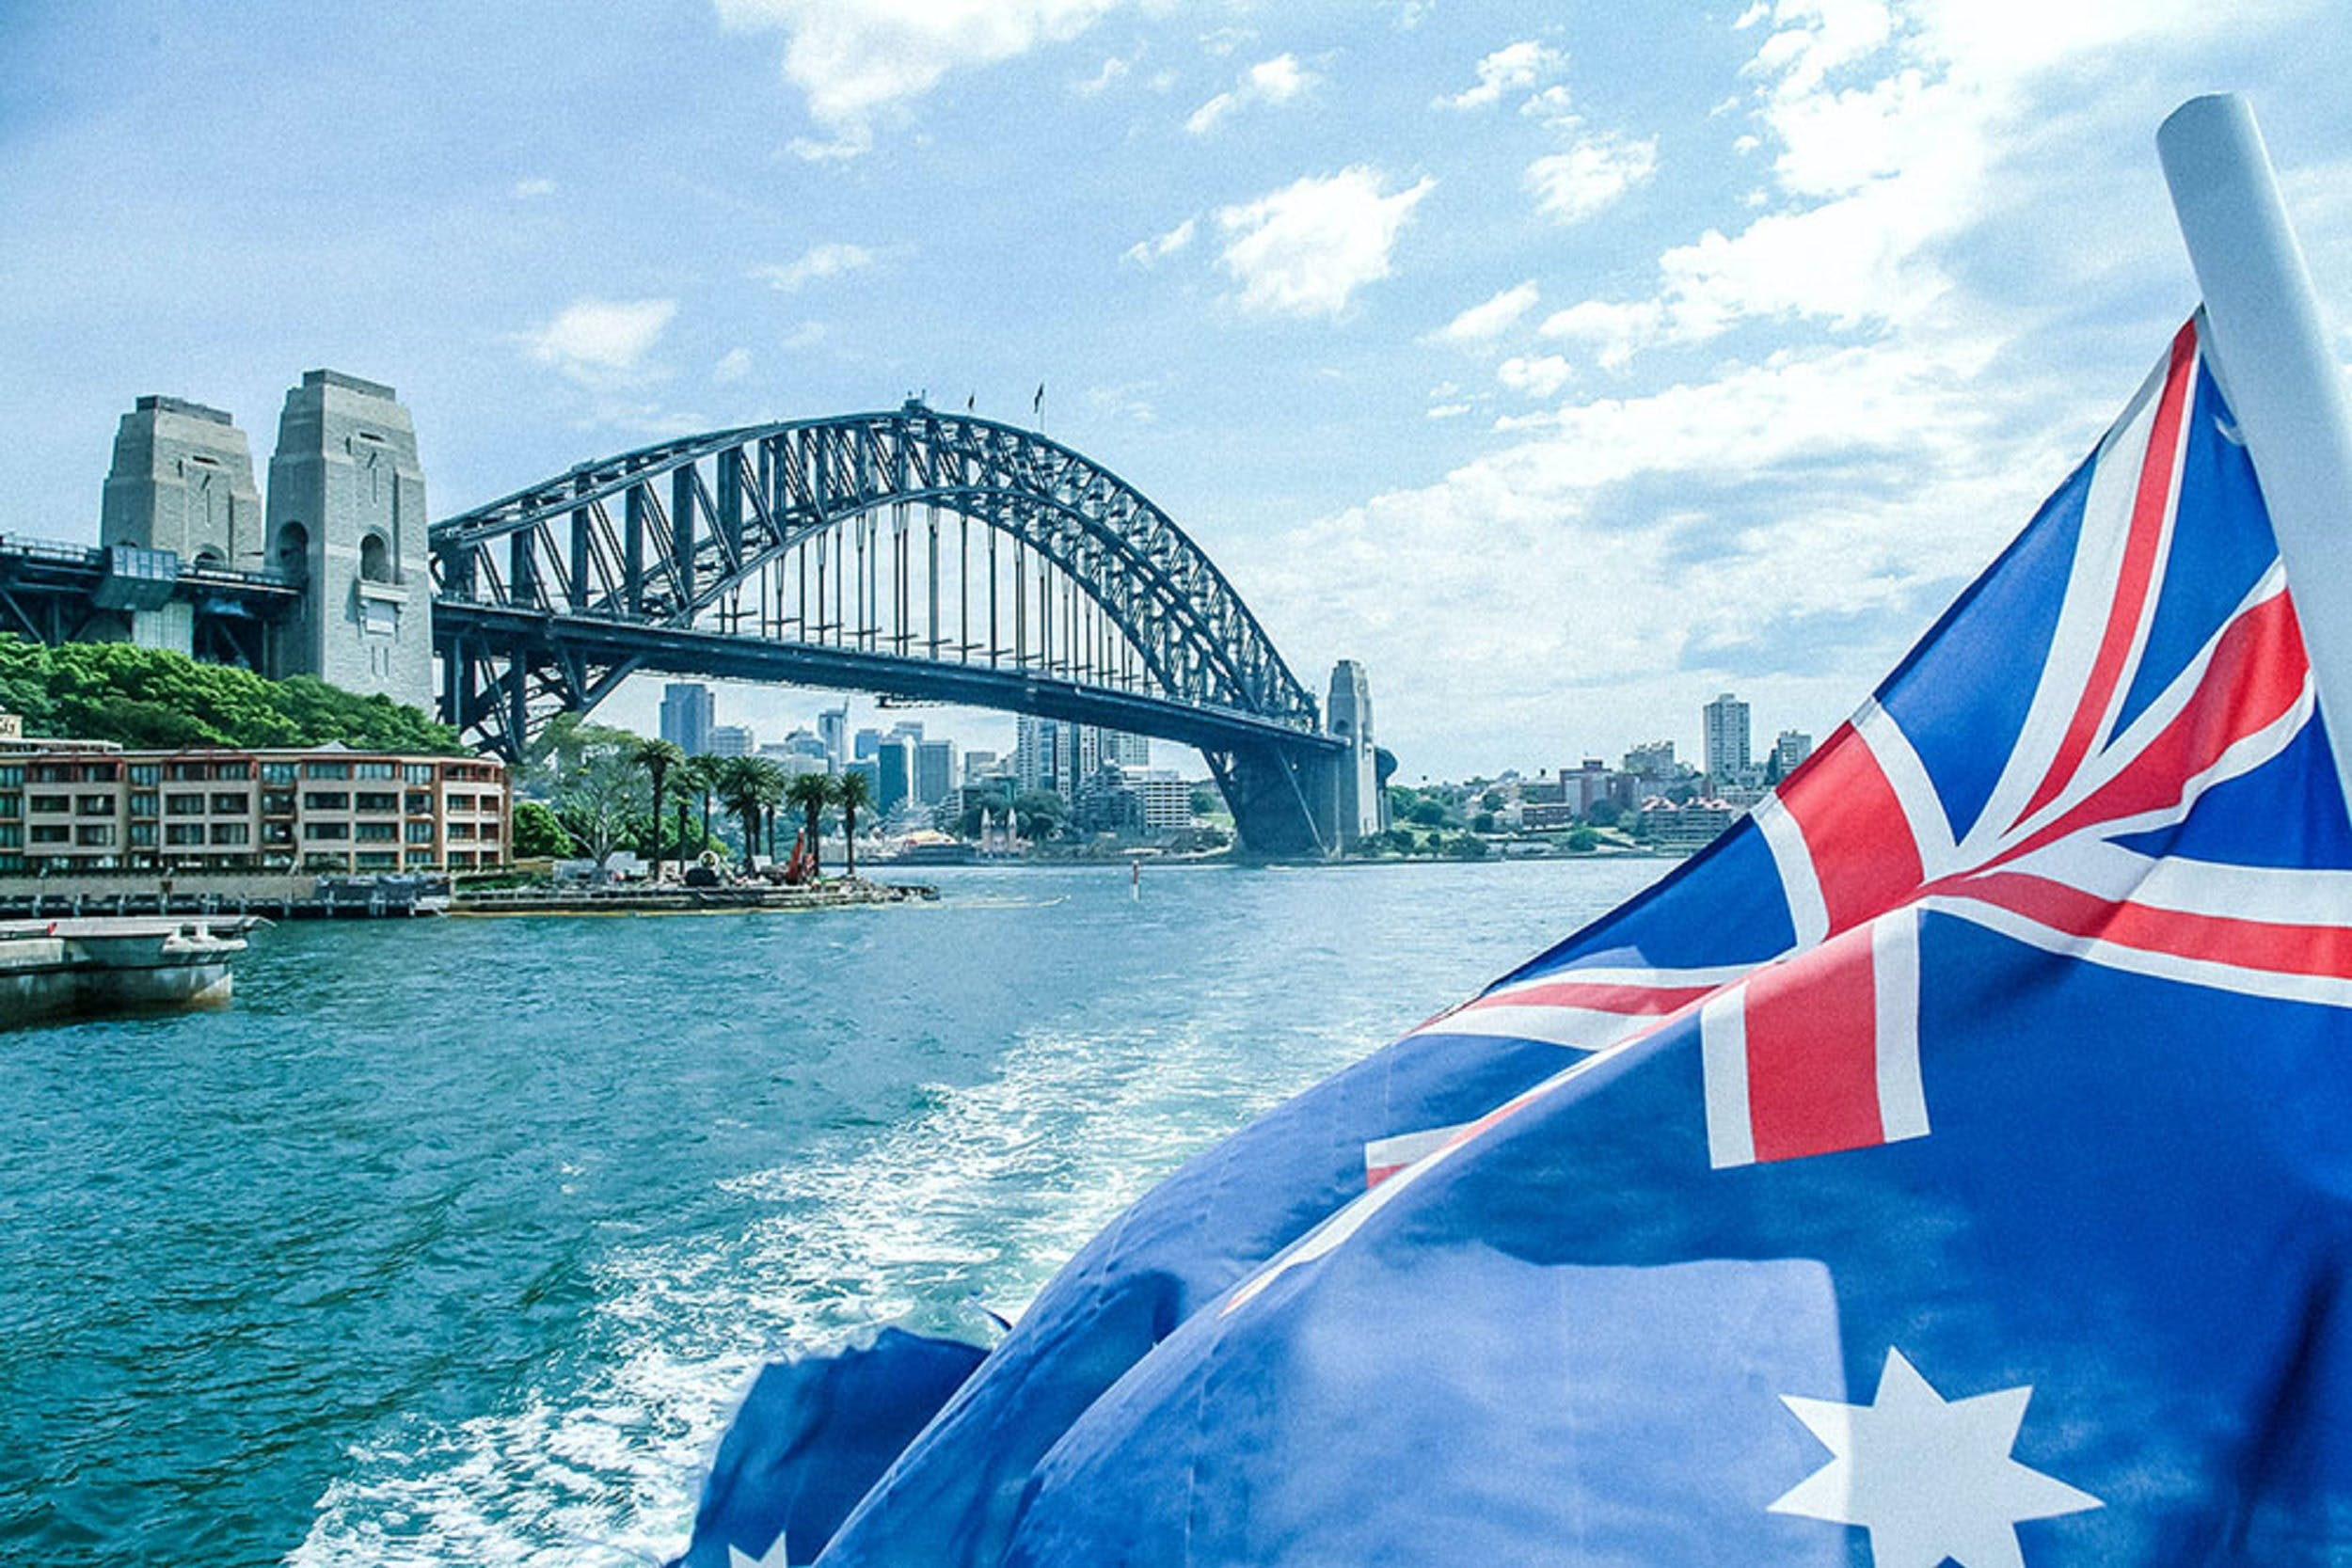 Australia Day Lunch and Dinner Cruises On Sydney Harbour with Sydney Showboats - Phillip Island Accommodation